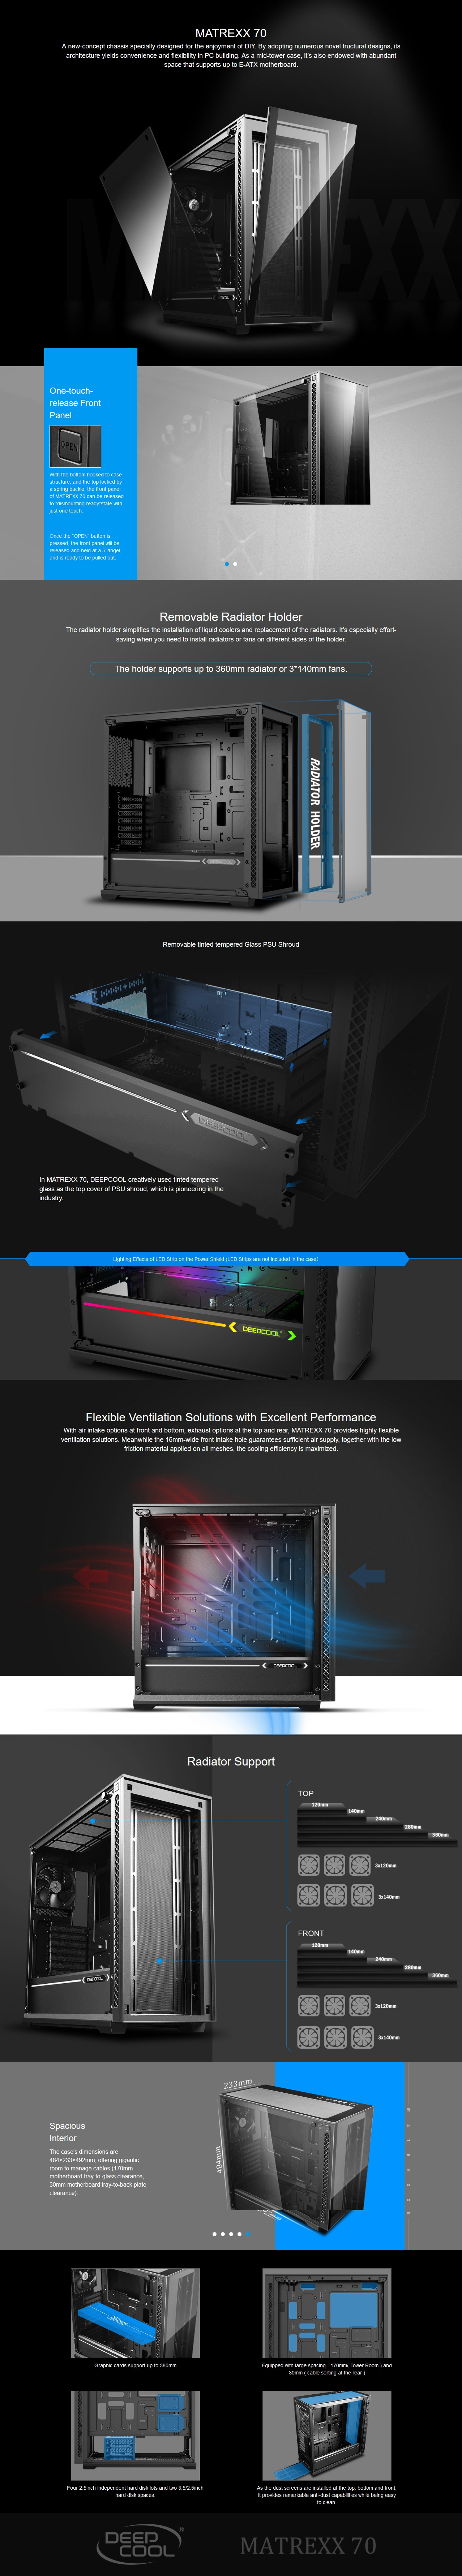 A large marketing image providing additional information about the product Deepcool Matrexx 70 Mid Tower Case w/ Tempered Glass Side Panel - Additional alt info not provided